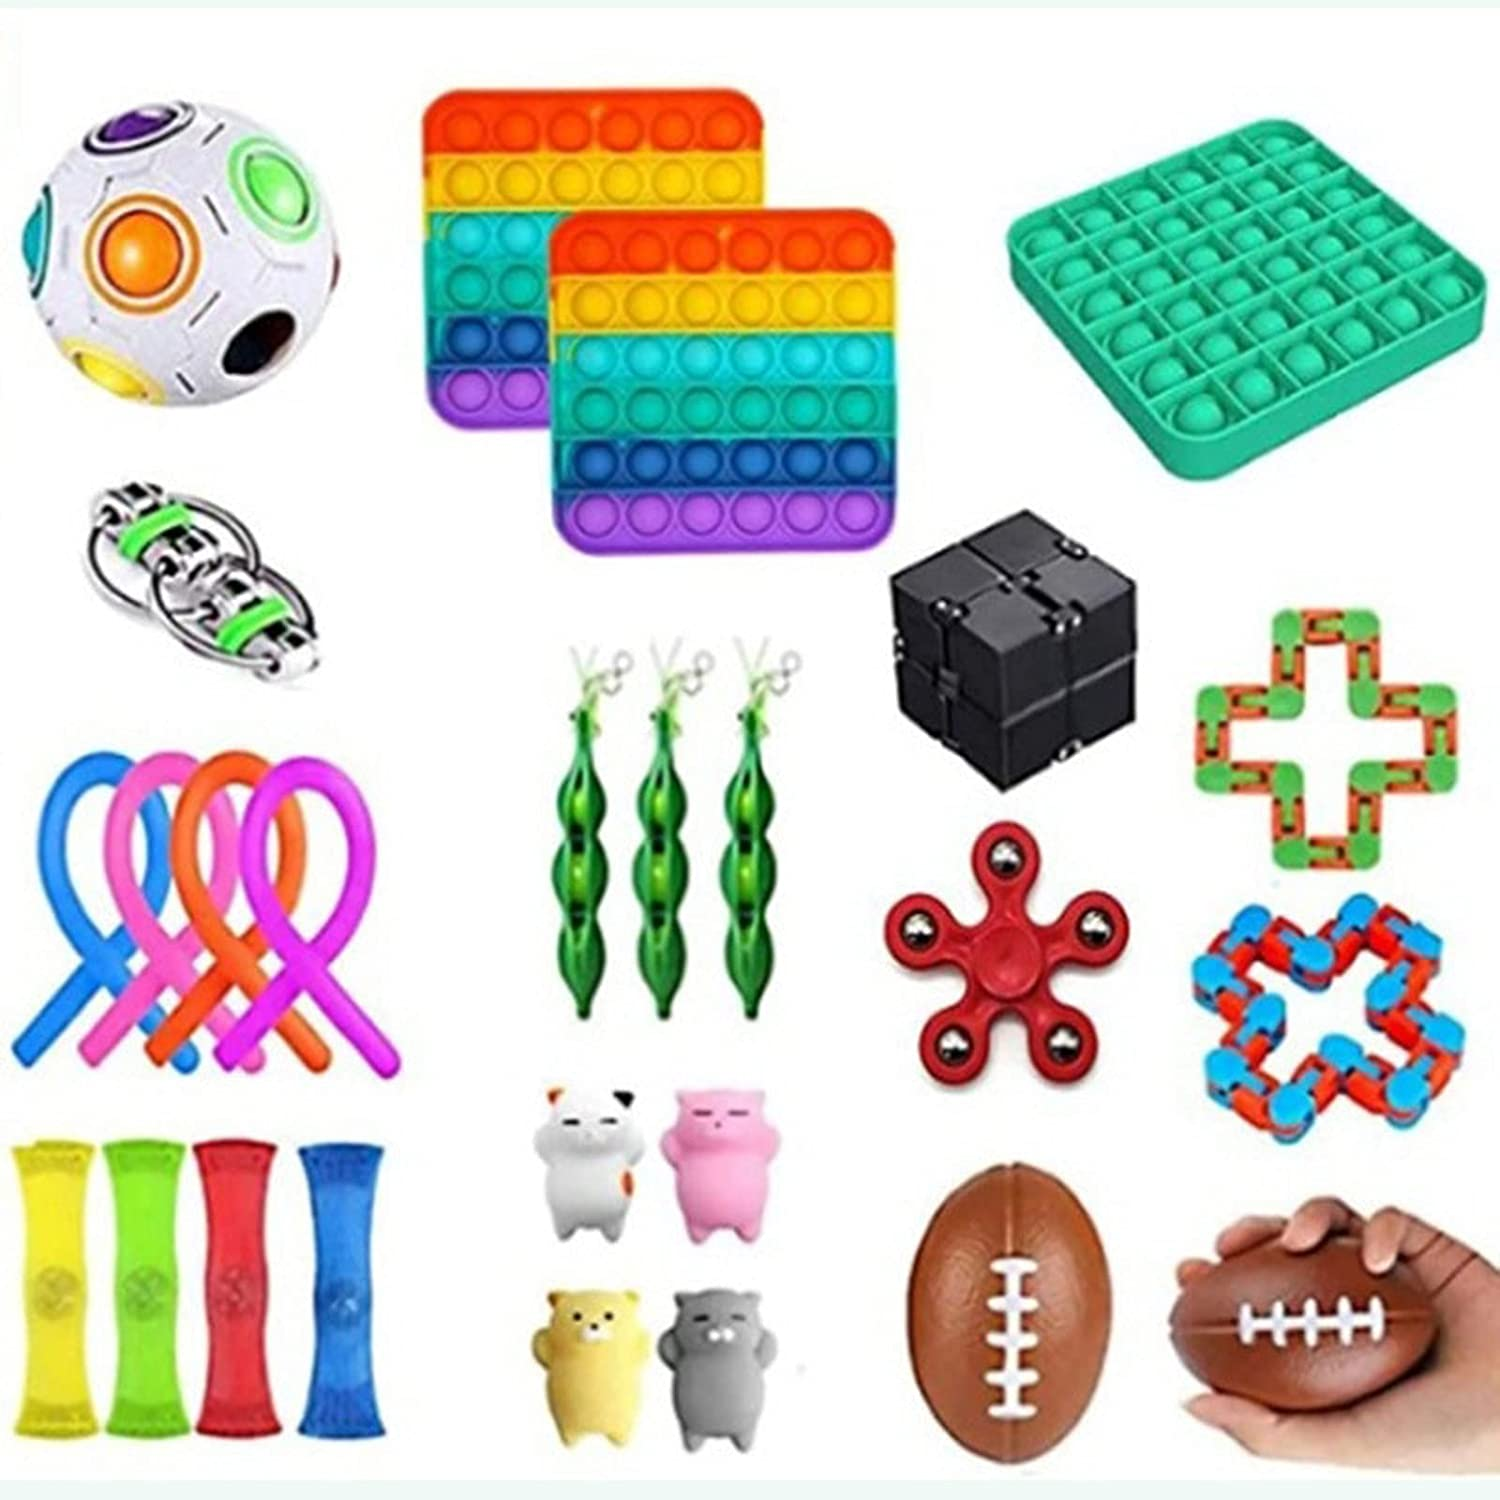 Sensory Ranking TOP2 New York Mall Toy Set Waterproof Silicone can Material Help Reli You